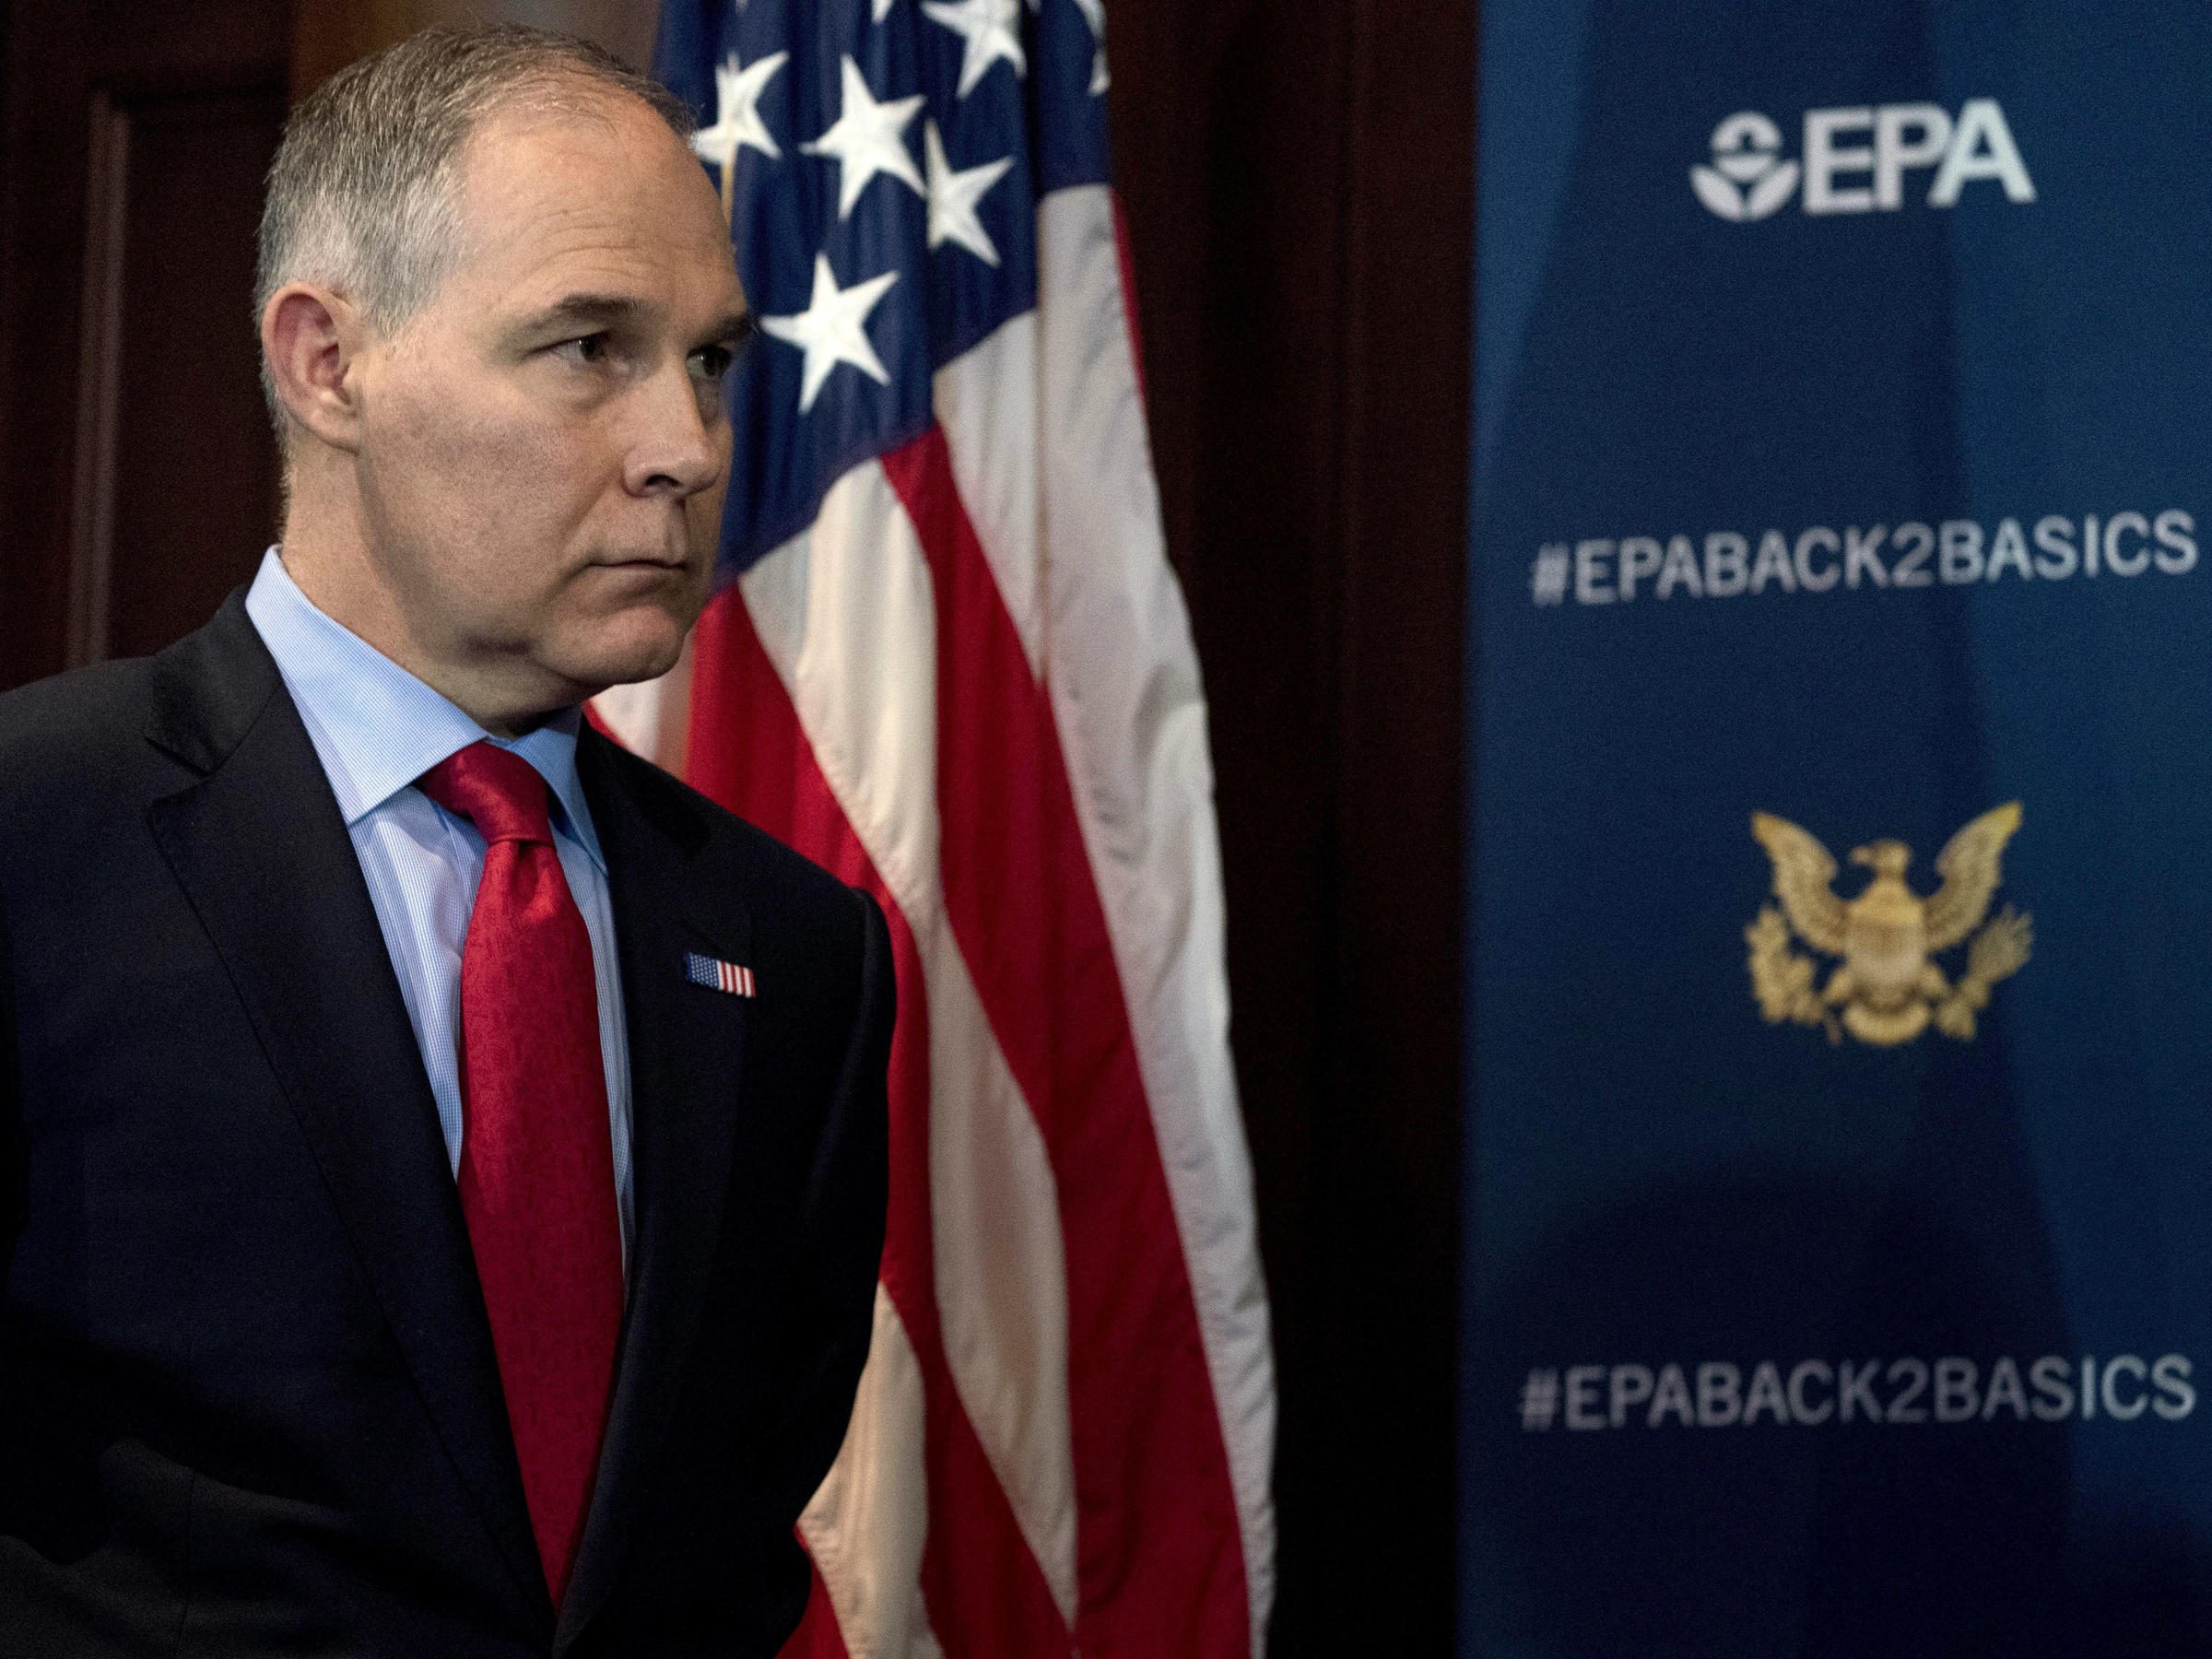 EPA Chief to Face Questions About Spending, Ethics